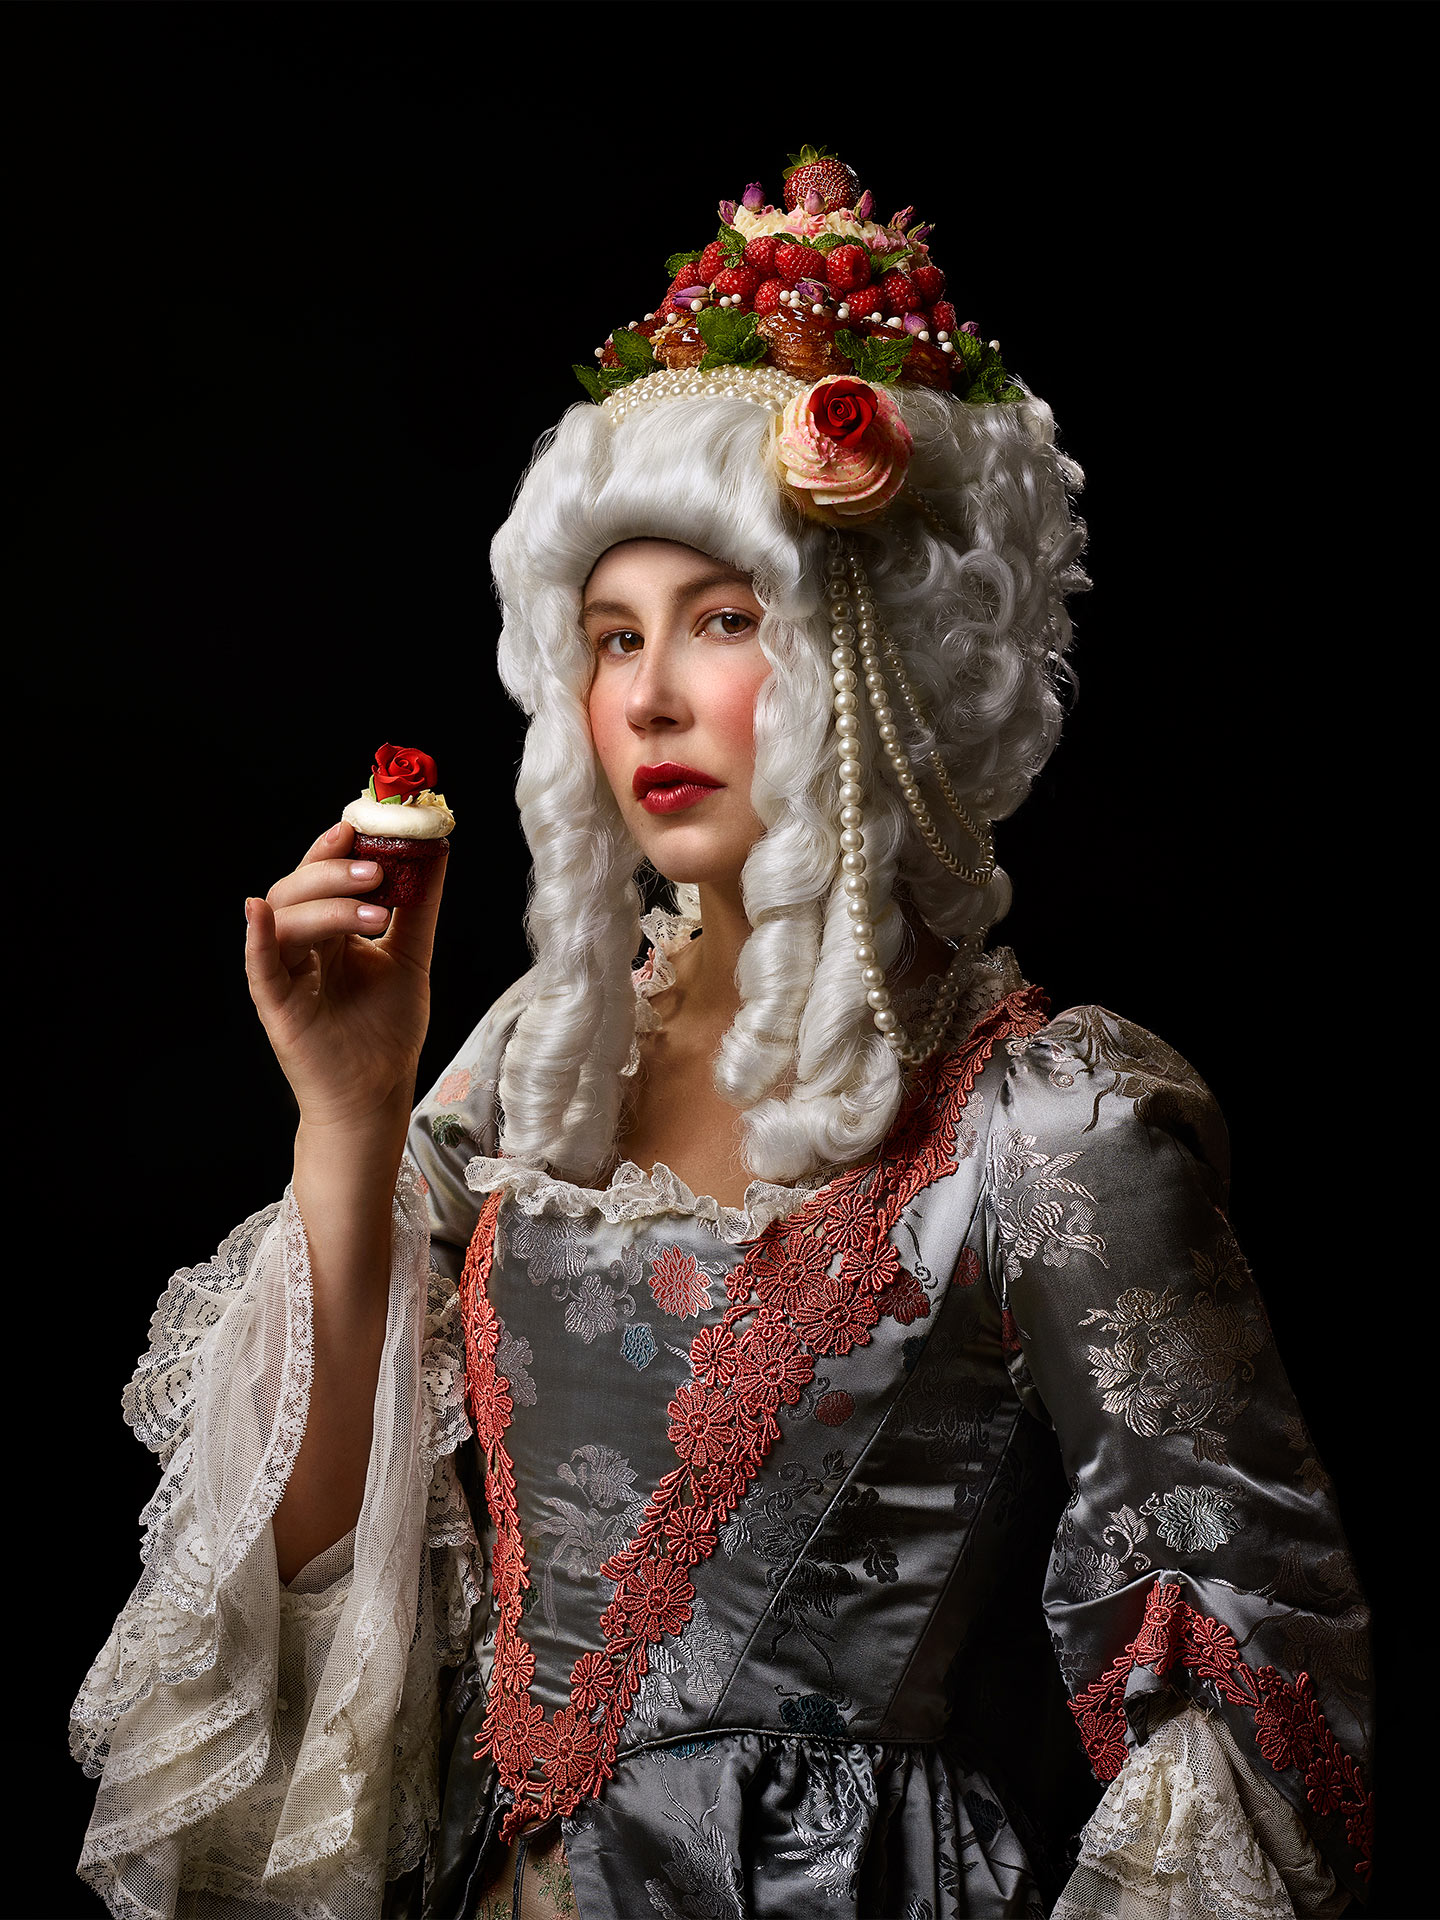 portrait of Juliette Gosselin dressed as Marie Antoinette with cake atop her wig holding a little cupcake by Jocelyn Michel for Voir Guide Restos